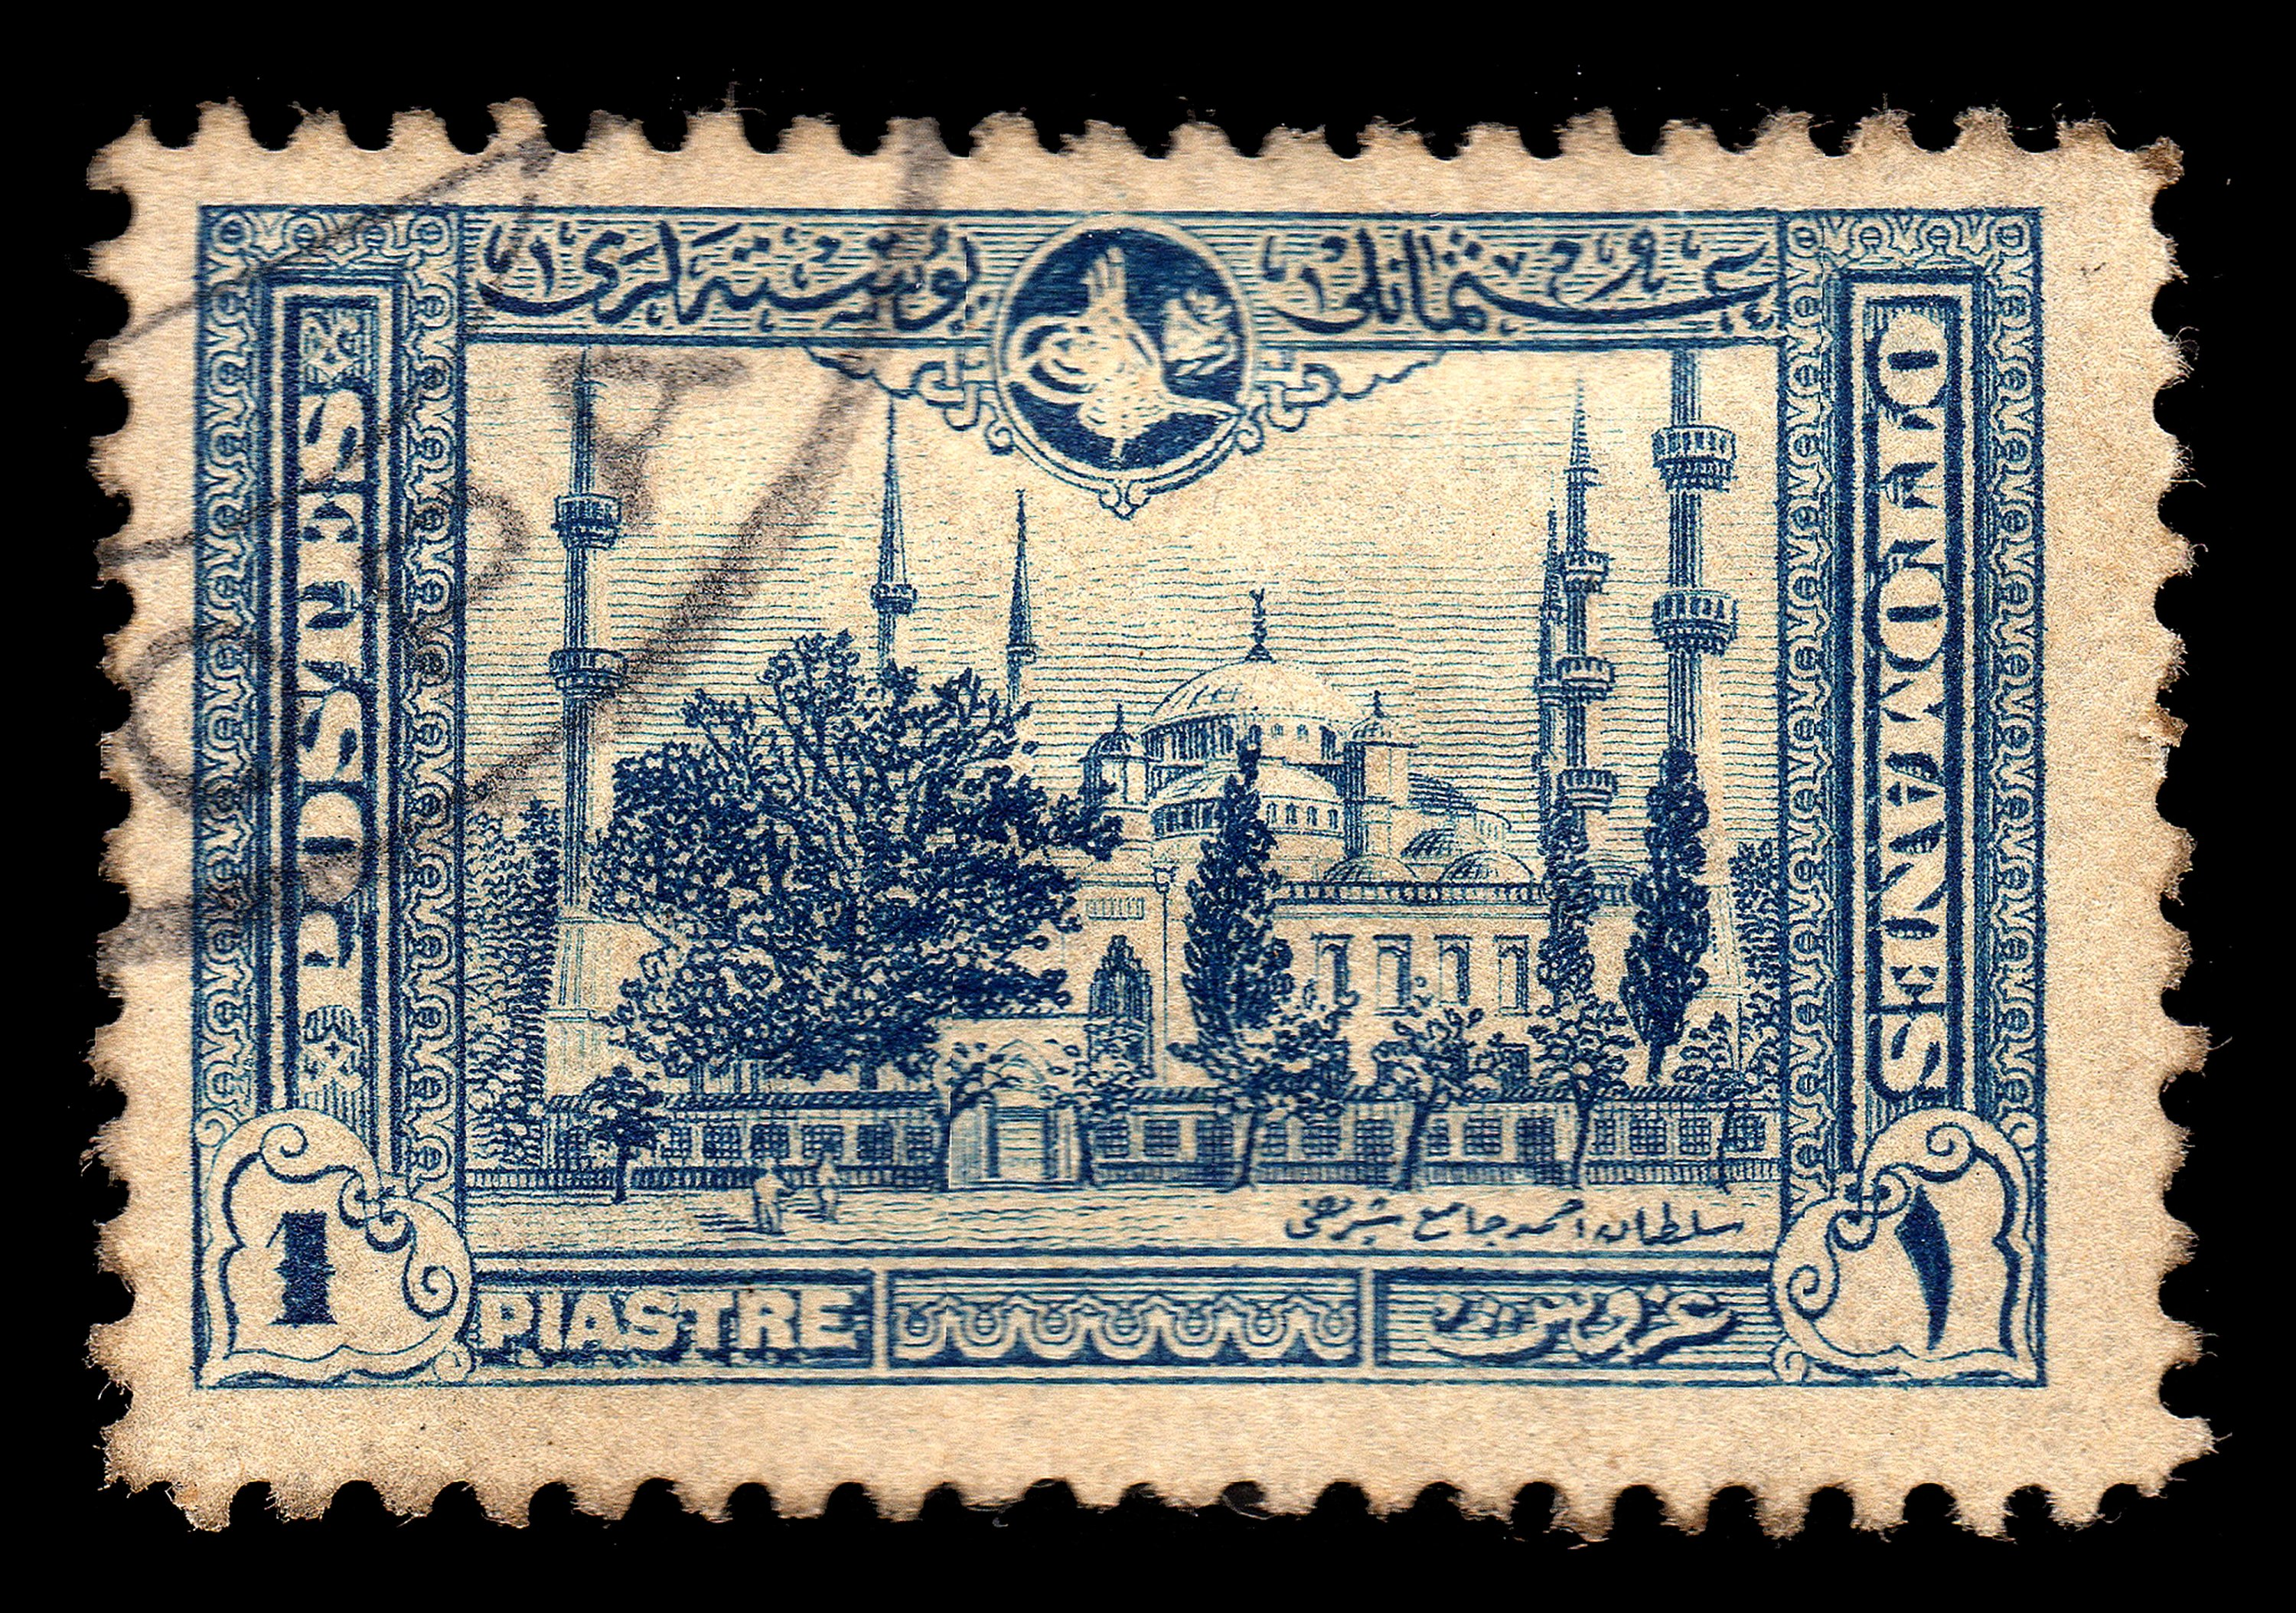 A postage stamp printed during the Ottoman Empire period shows Istanbul's historic Blue Mosque, in this photo taken in Ankara, Turkey, March 23, 2021. (Photo by Shutterstock)